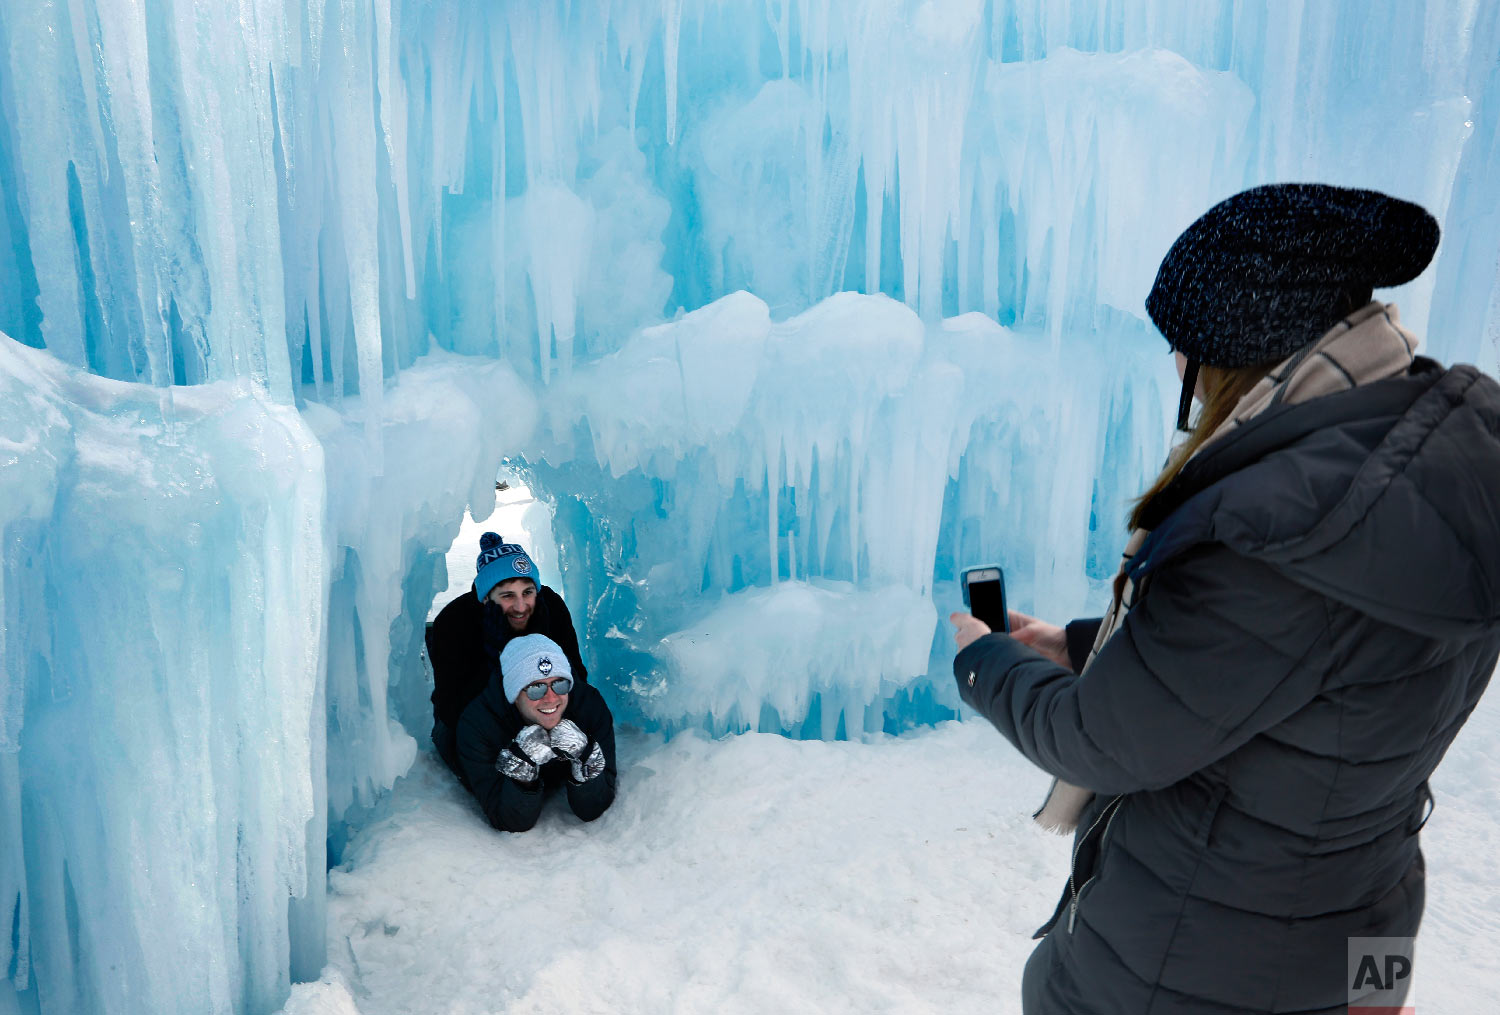 Visitors pose for a photo in a tunnel at Ice Castles Jan. 26, 2019, in North Woodstock, N.H. (AP Photo/Robert F. Bukaty)